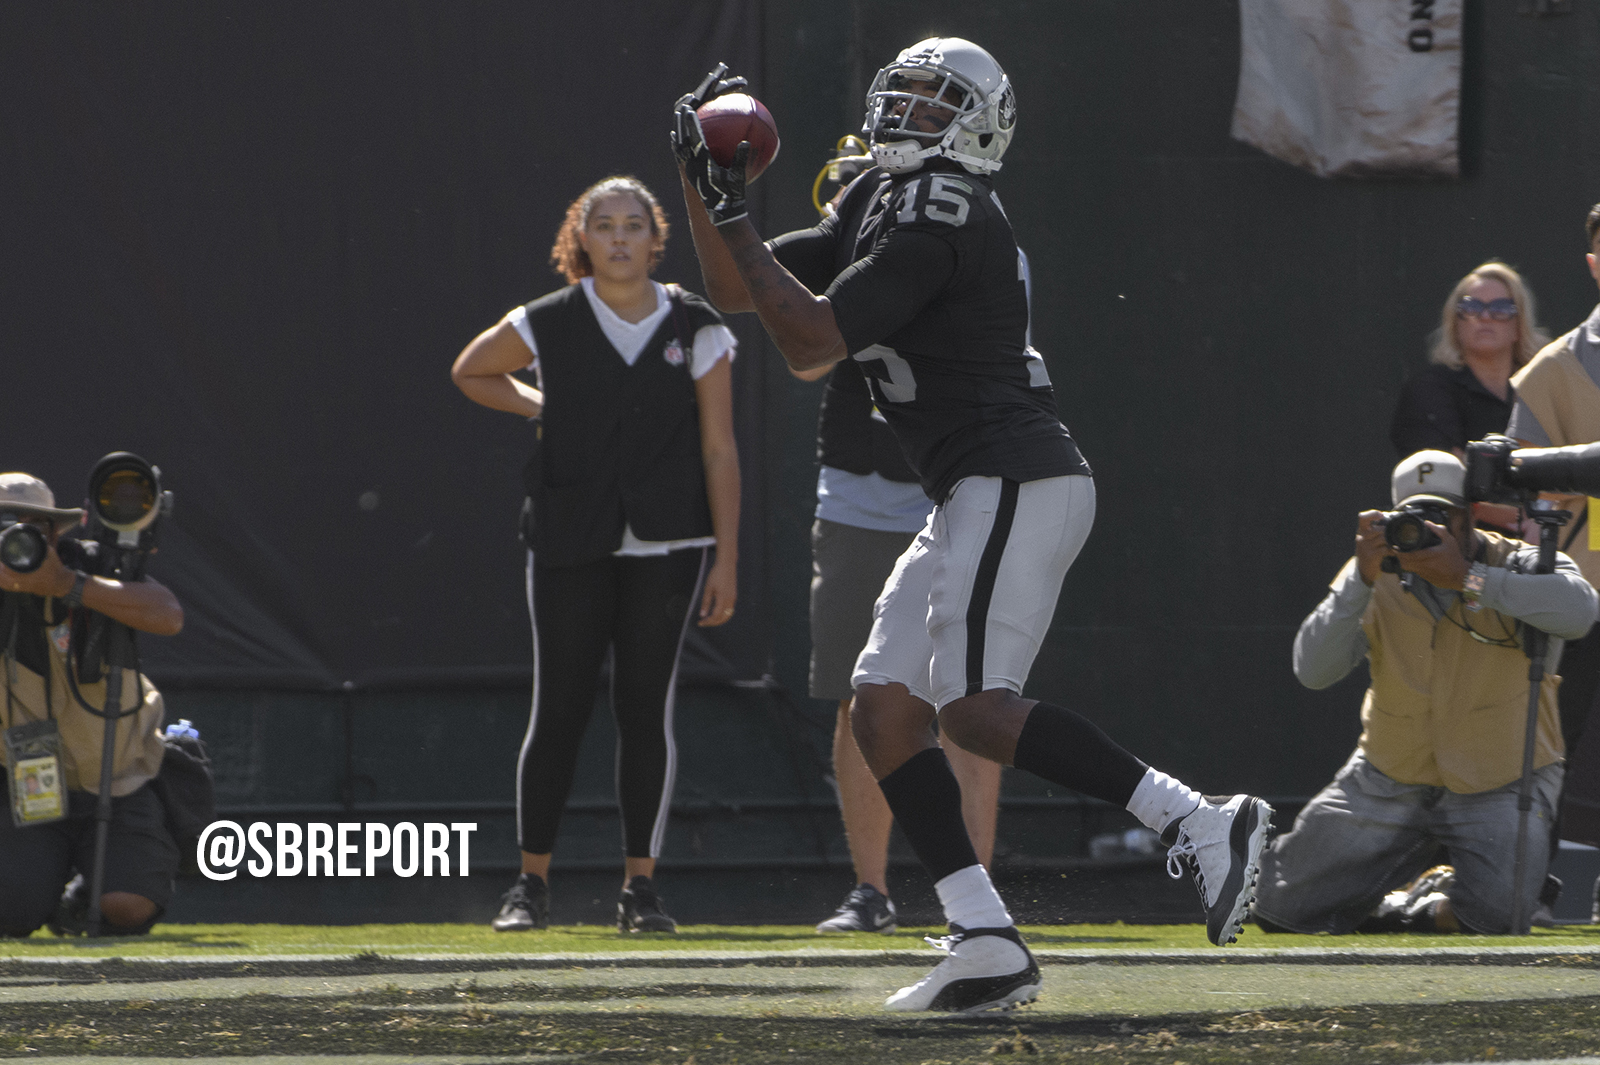 Raiders make moves at wide receiver